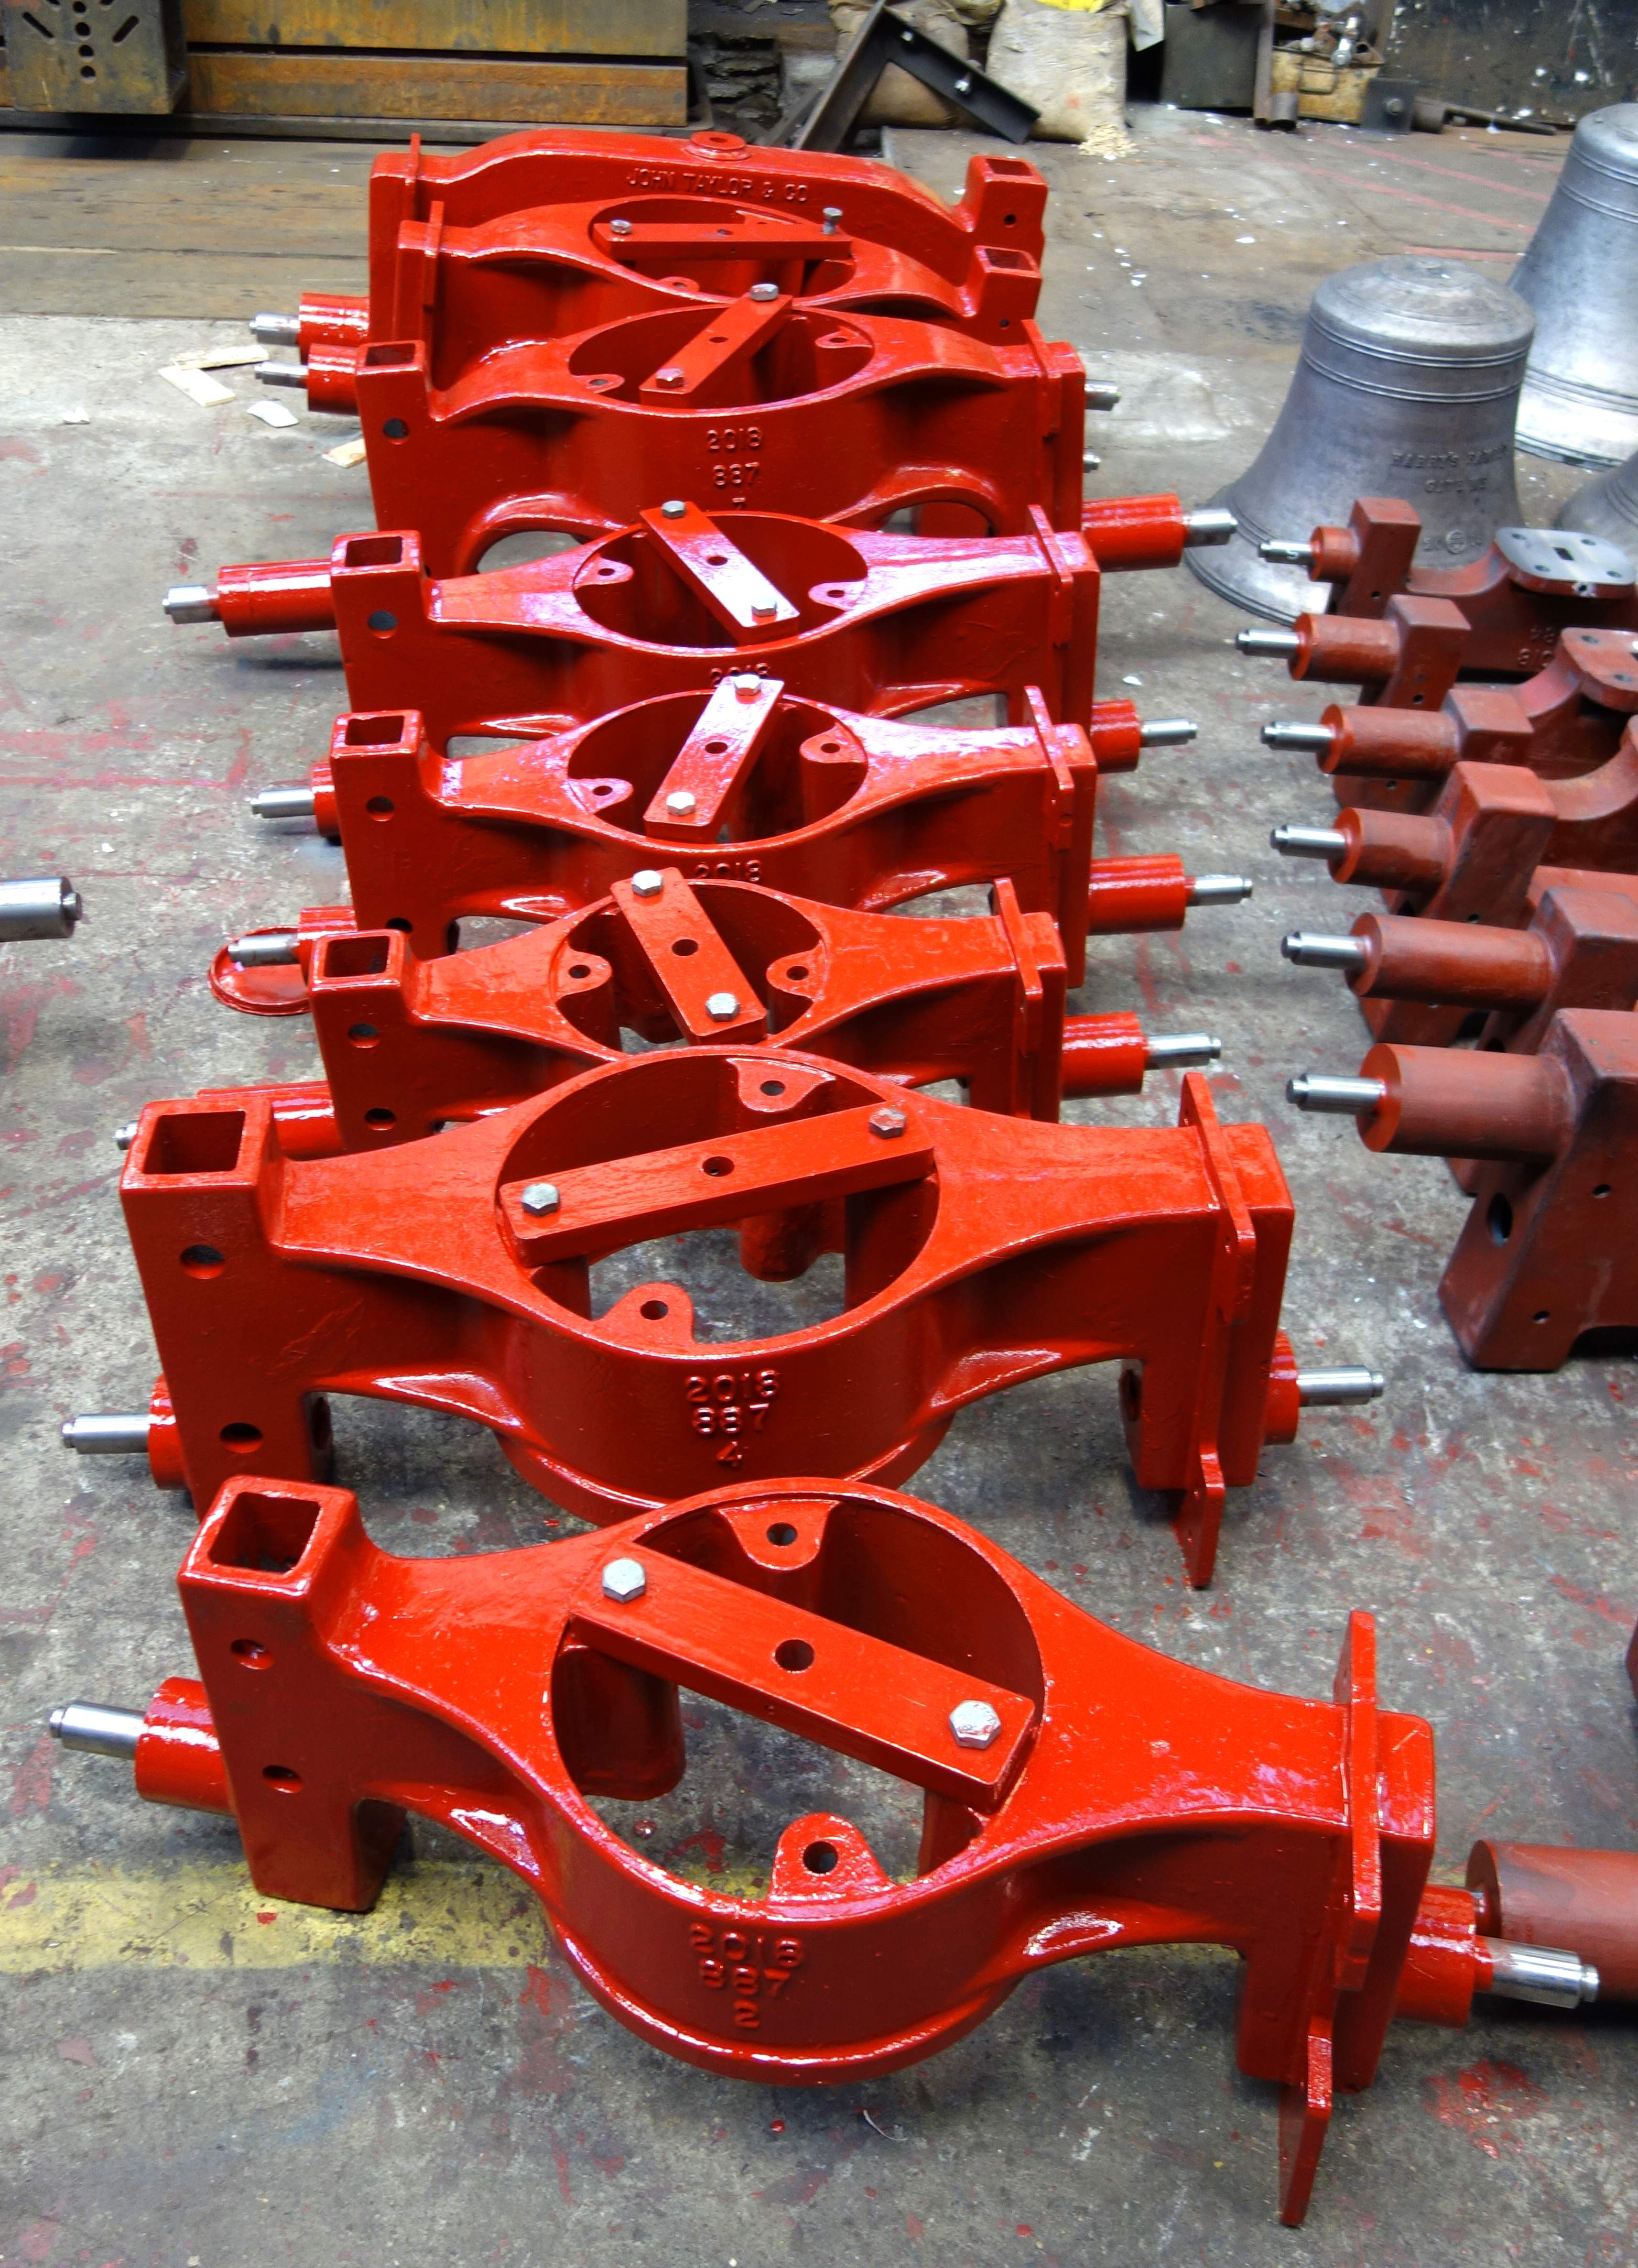 The canons have to be retained on the bells so specially designed canon retaining headstocks have been cast.